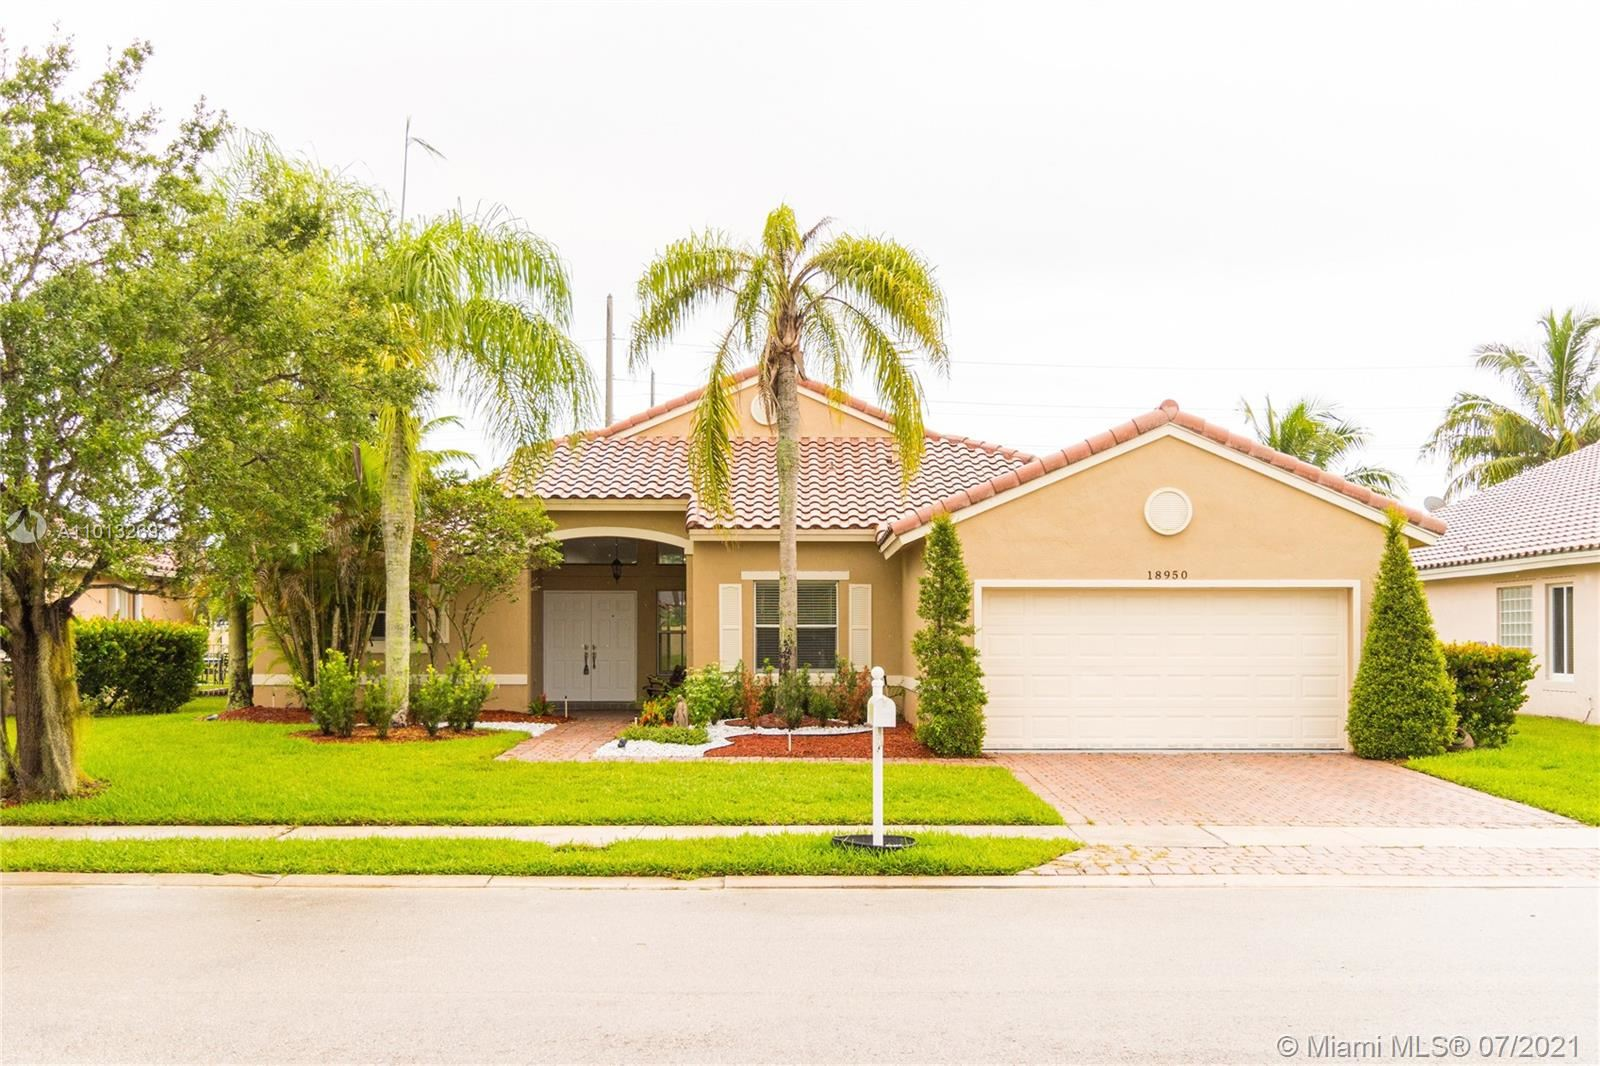 18950 SW 16th St, Pembroke Pines, FL 33029 - #: A11013269